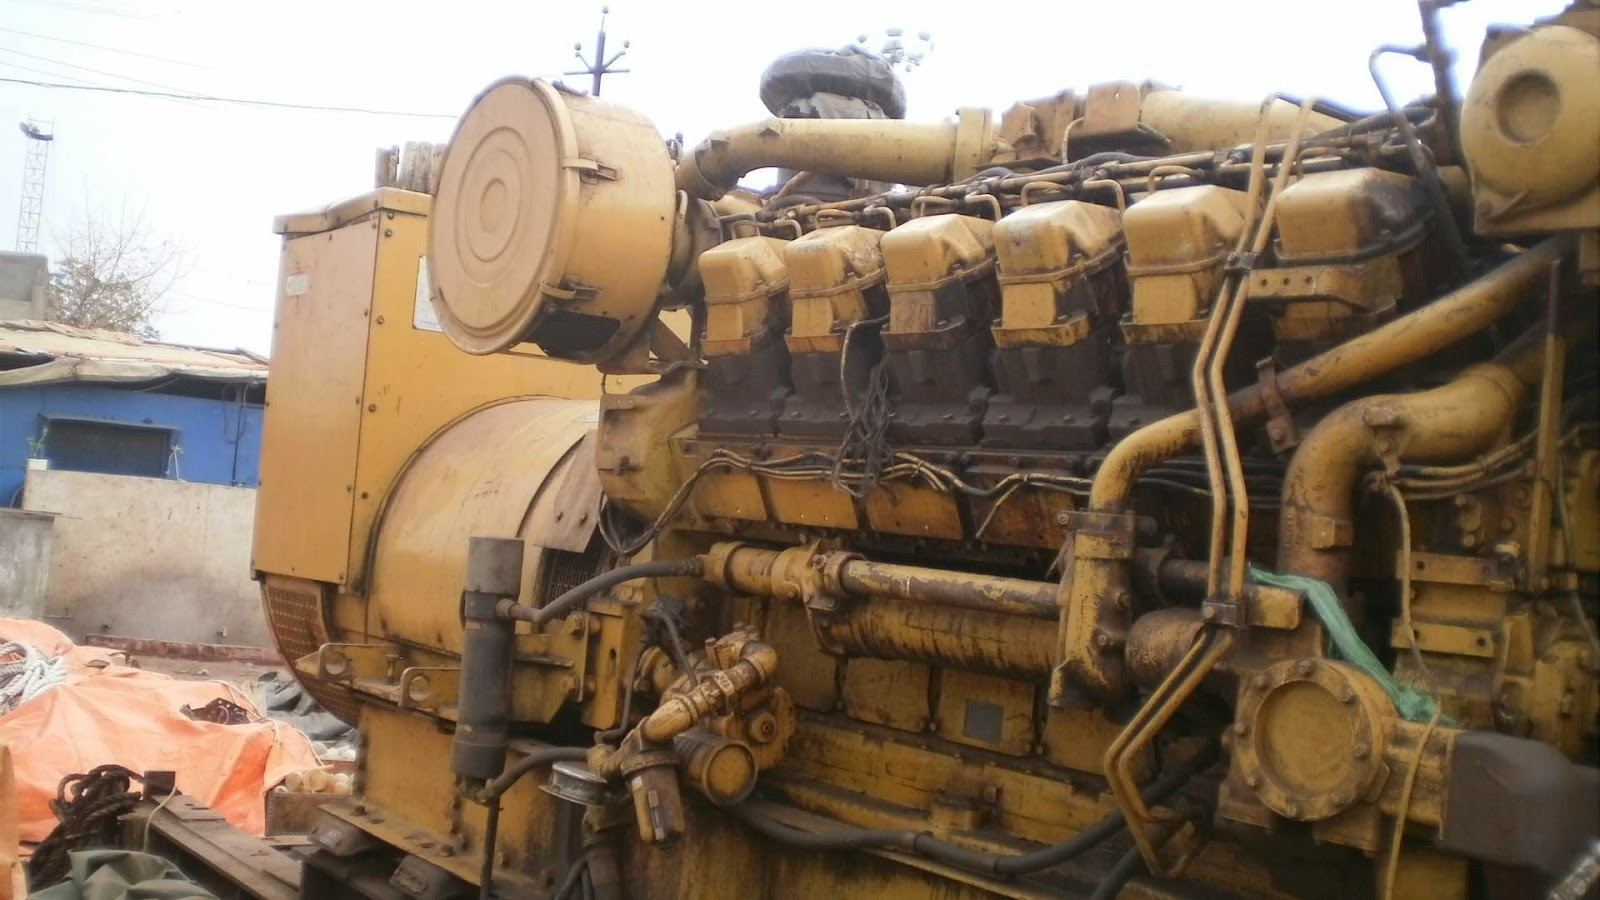 CAT 3512, Caterpillar Diesel Generator for Sale, Used, Second Hand, India, Alang, Low running hours, rebuilt, ready to dispatch